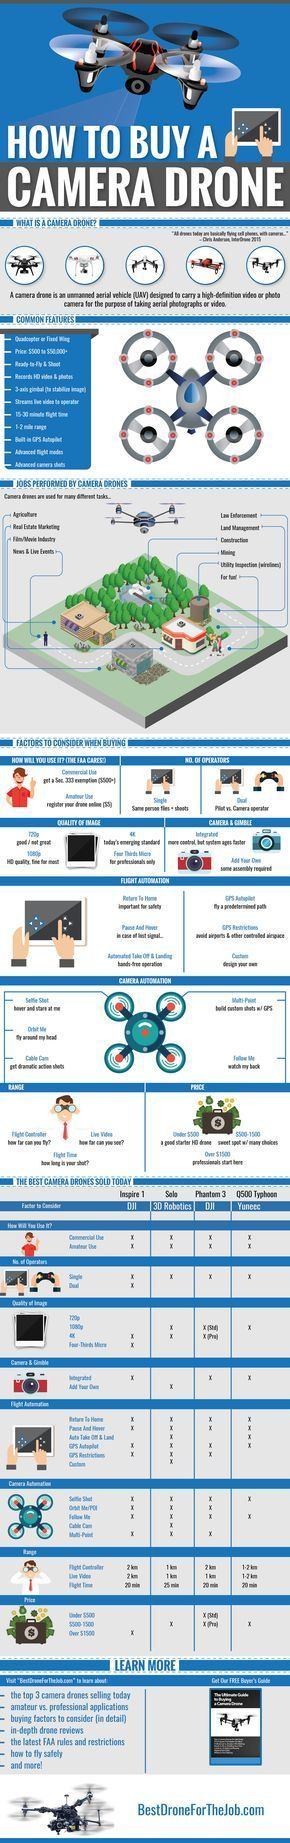 18 best Drones - #Drone Stuff images on Pinterest Drones, Aerial